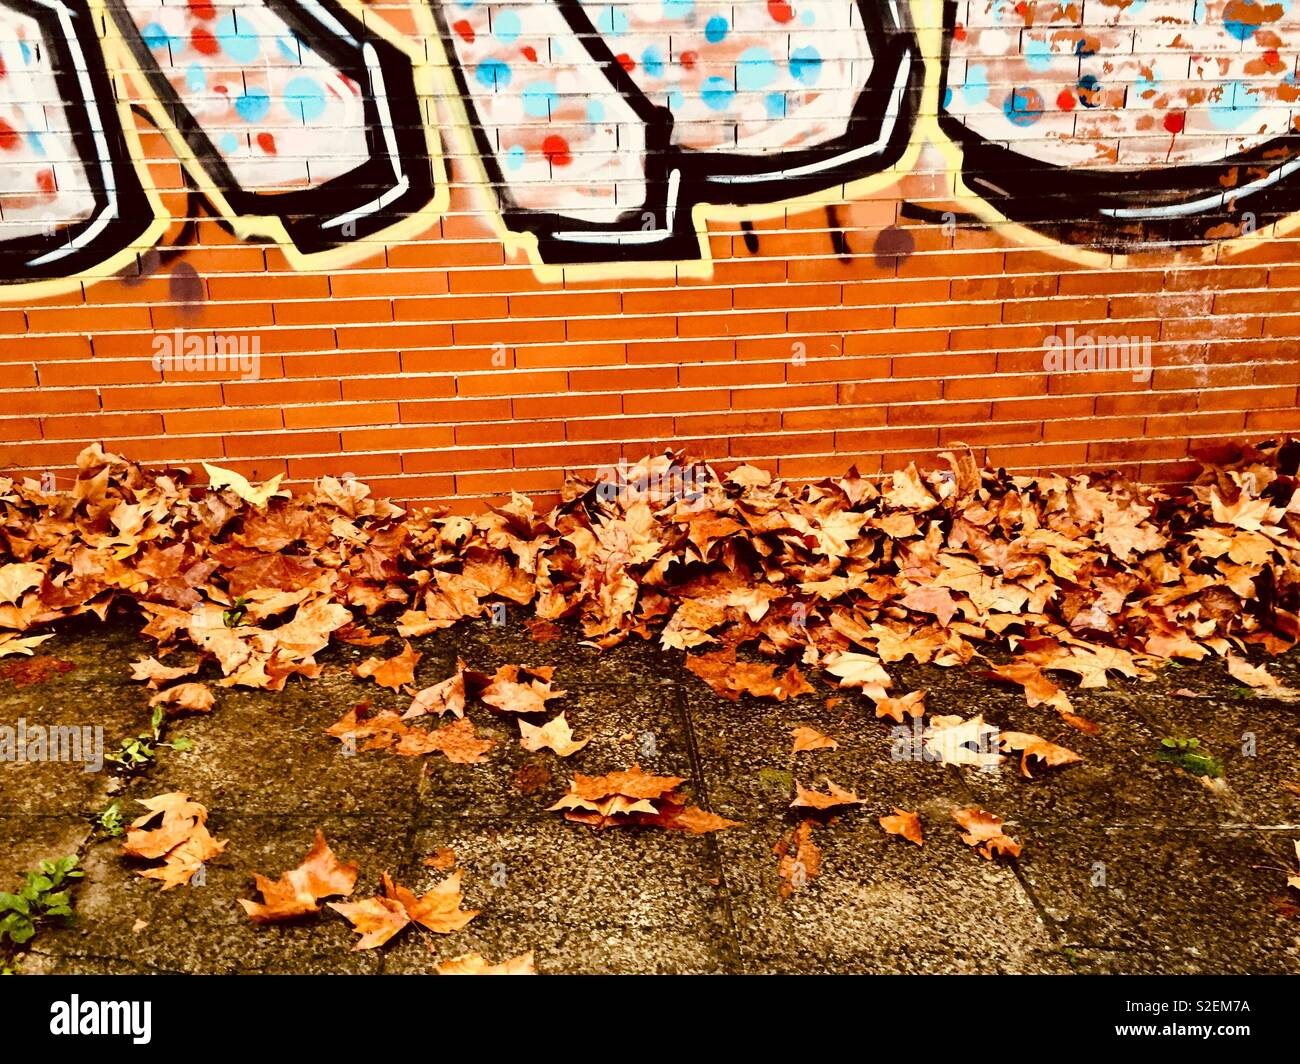 dry autumn leaves on a wall with a graffiti - Stock Image